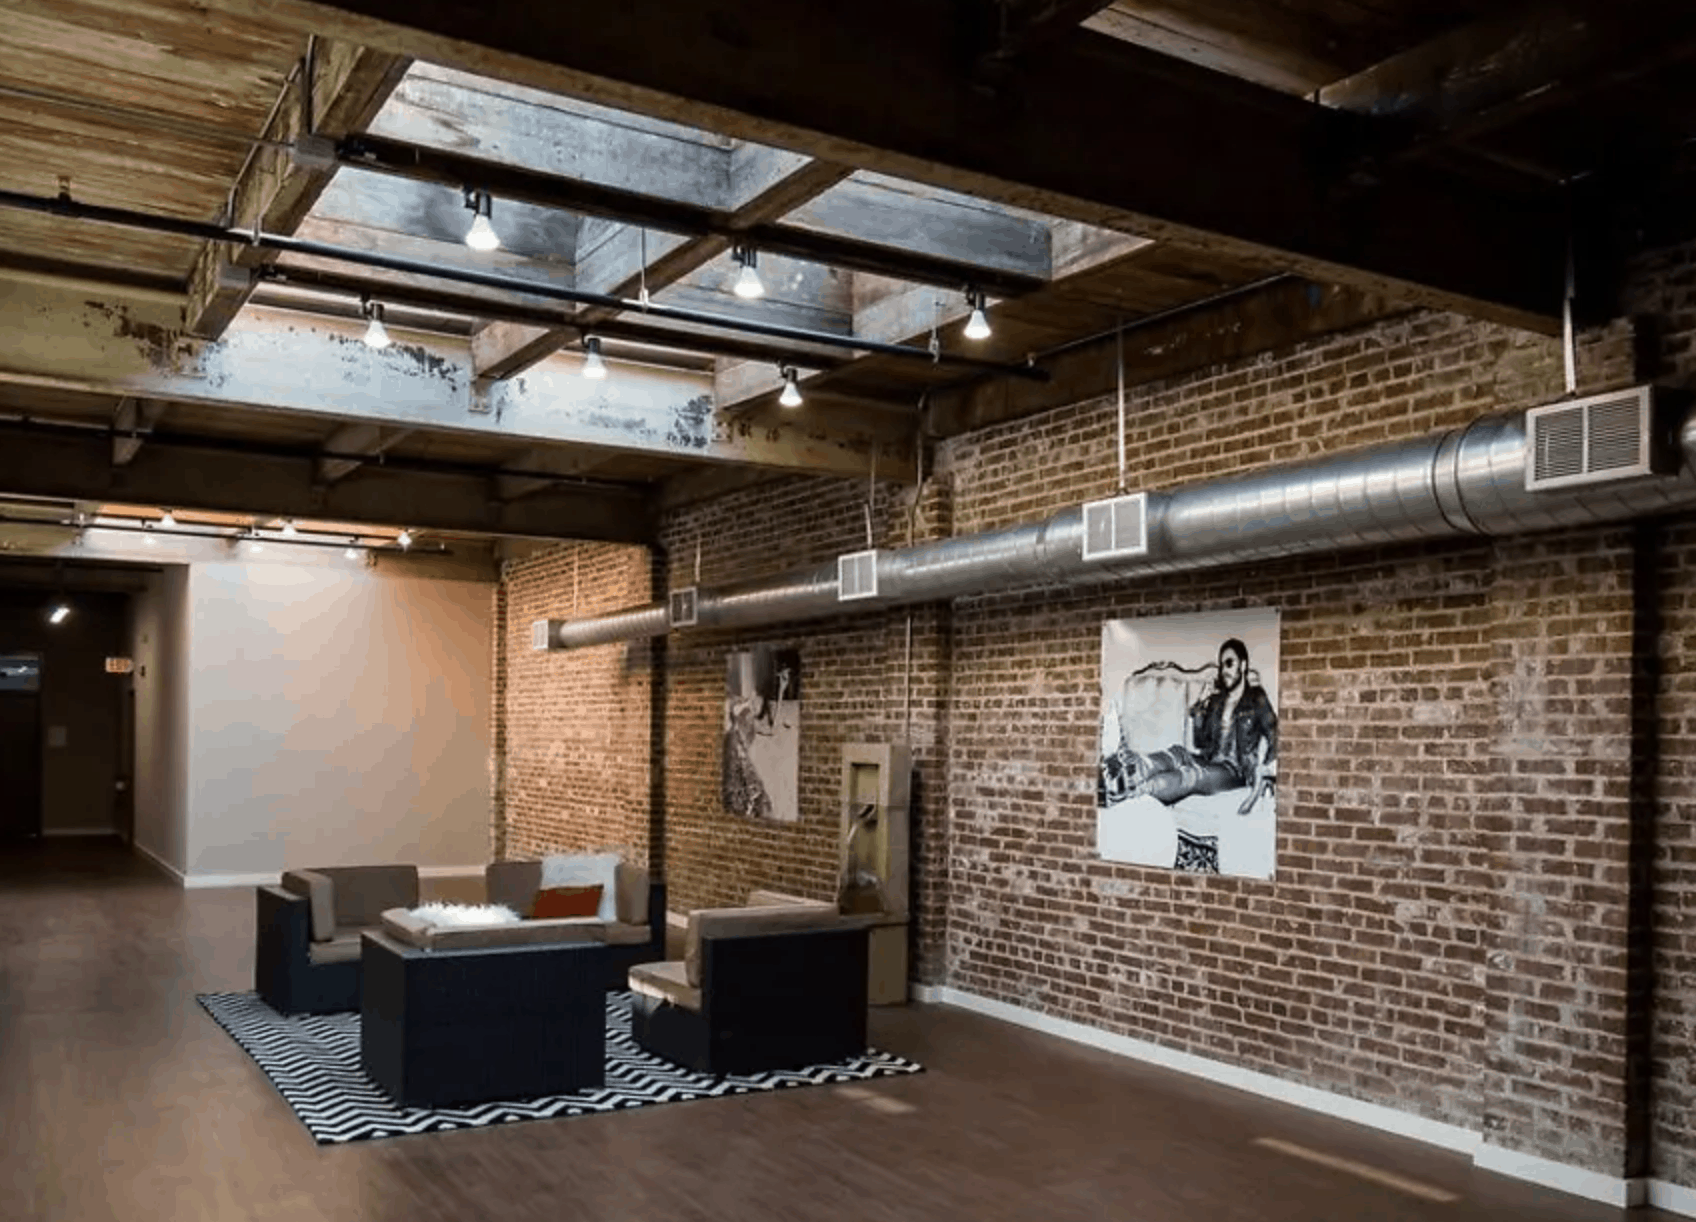 loft apartment with exposed brick and light fixtures, large open space